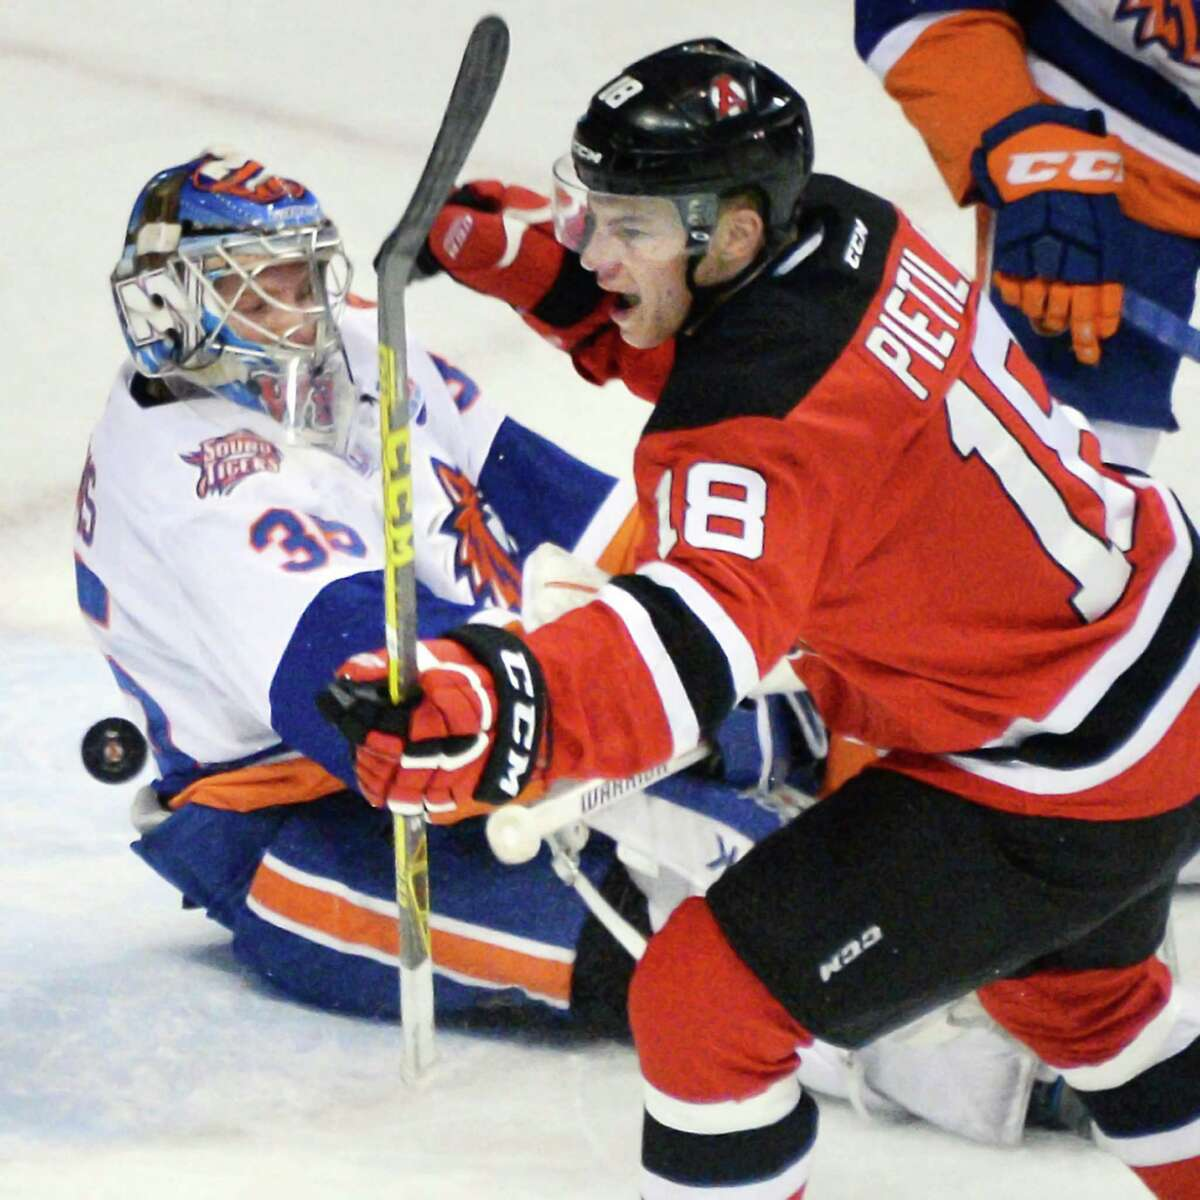 Albany Devils' #18 Blake Pietila reacts to scoring against Bridgeport Sound Tigers goalie Stephon Williams, left, during Saturday's game at the Times Union Center April 16, 2016 in Albany, NY. (John Carl D'Annibale / Times Union)